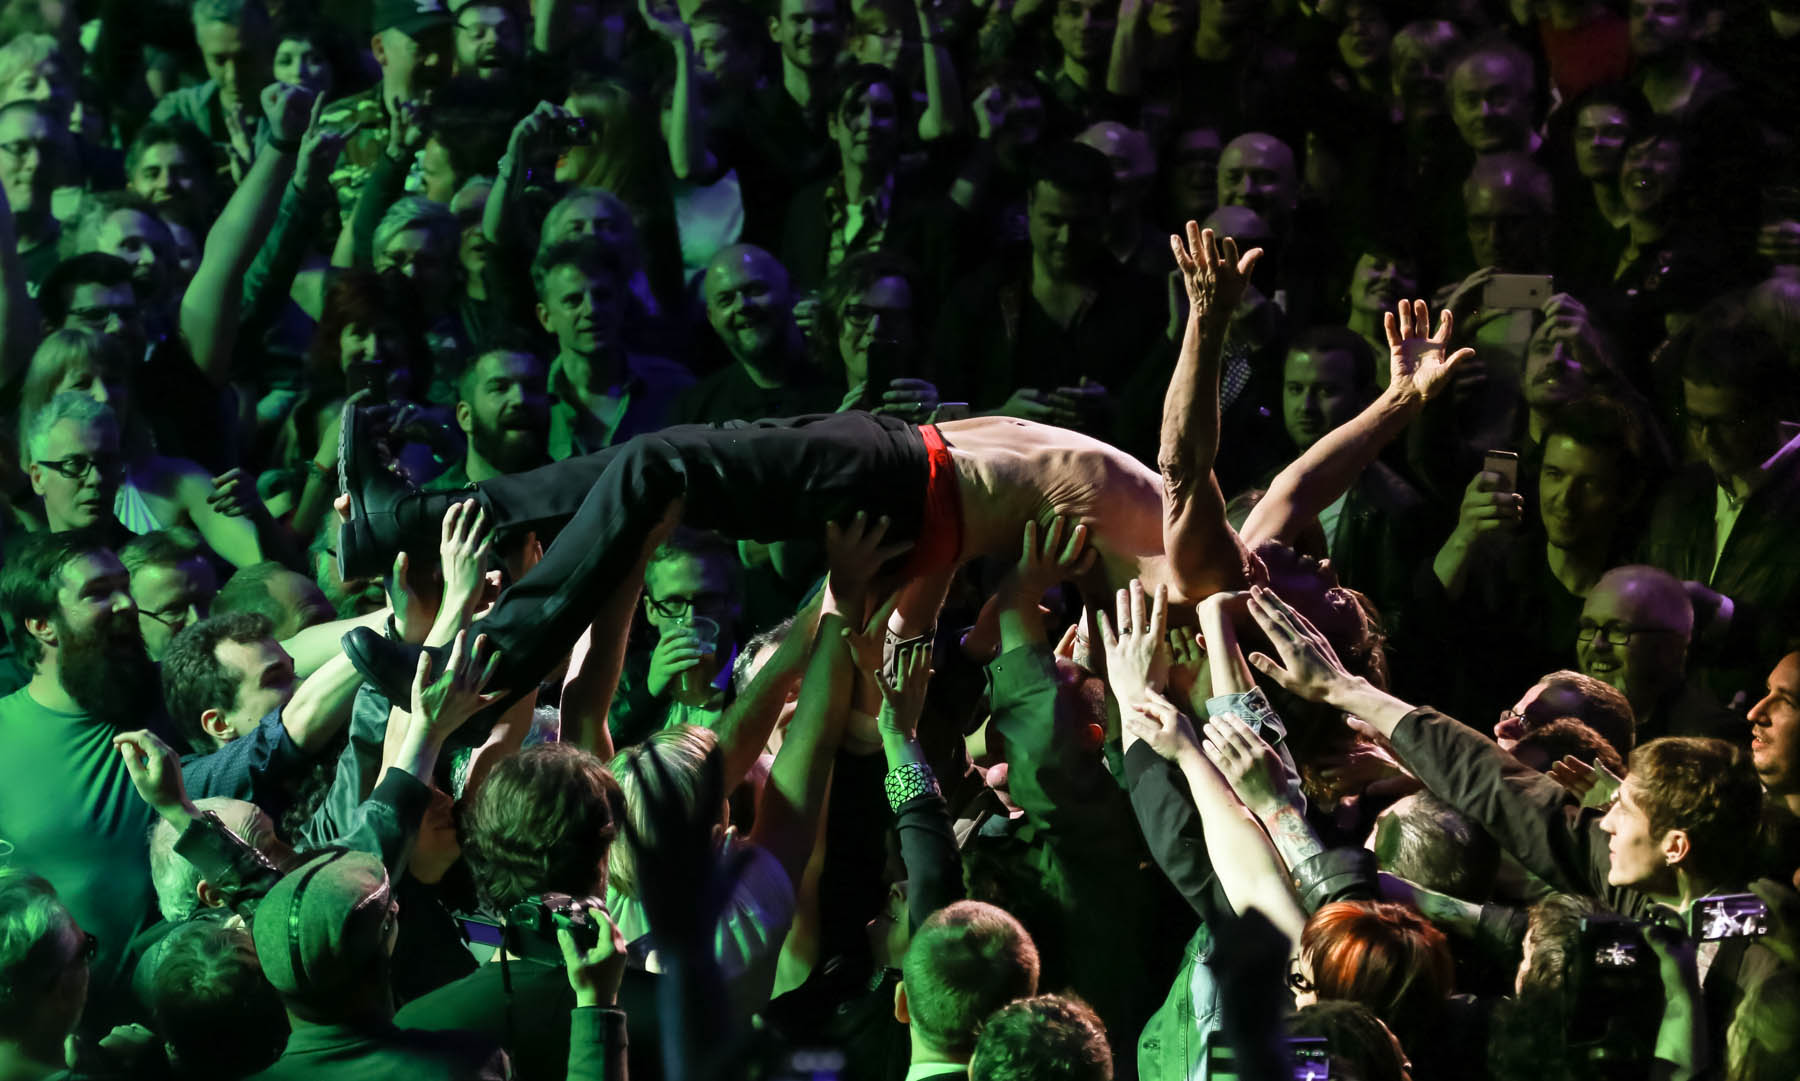 Iggy Pop at the Royal Albert Hall by Christie Goodwin